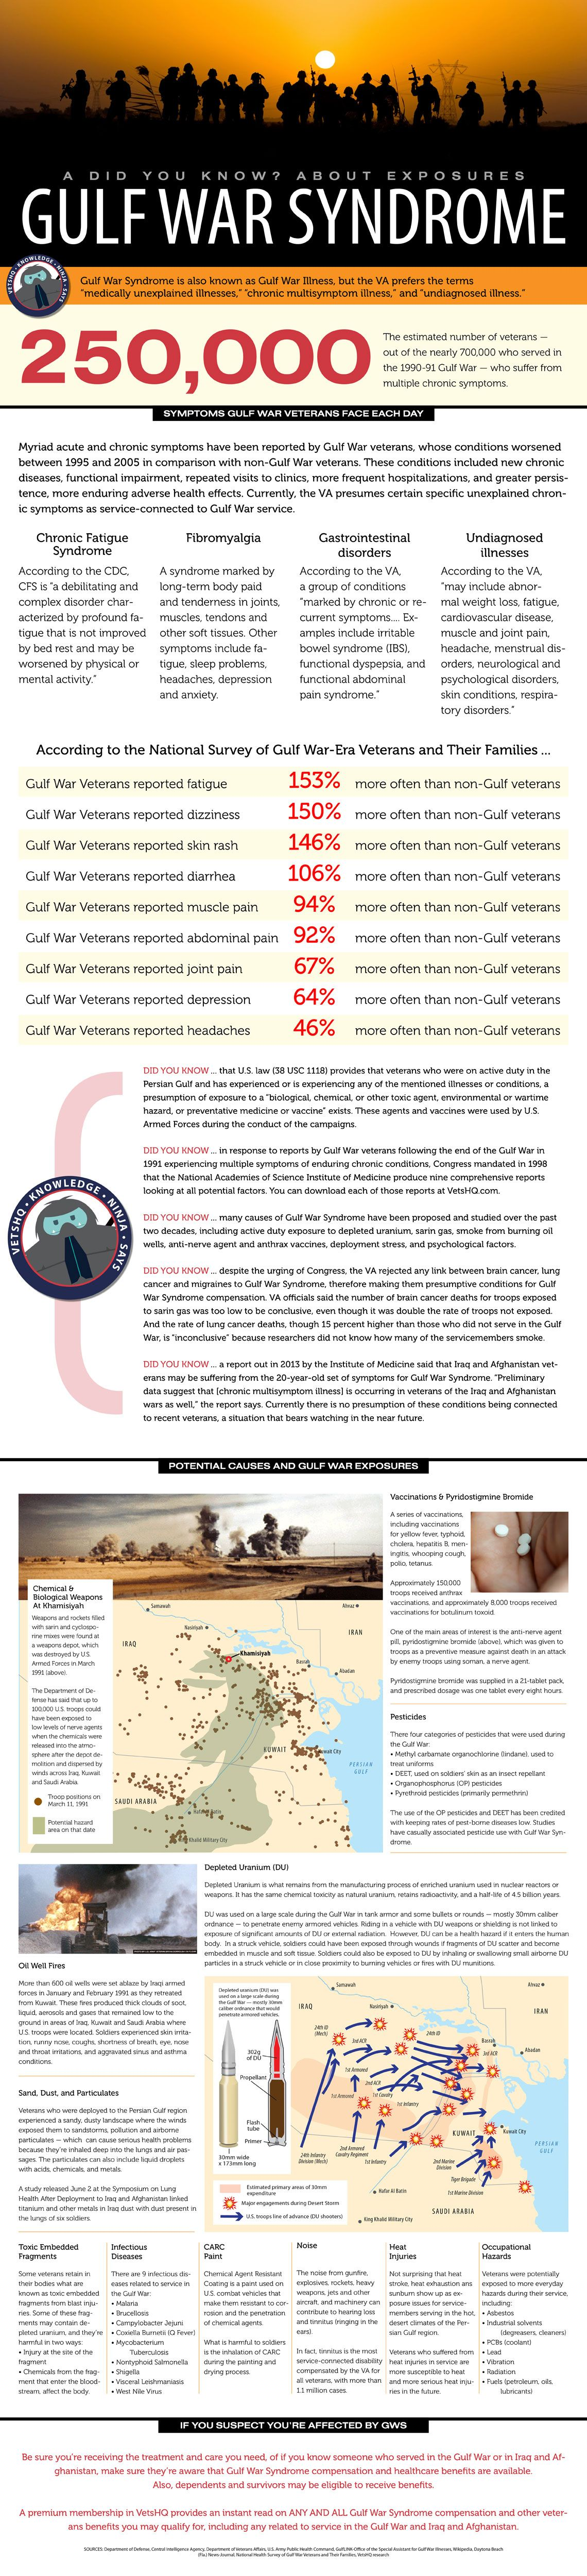 Gulf War Syndrome (GWS), also known as Gulf War Illness (GWI), is a chronic multisymptom illness affecting a wide cross-section of Gulf War-era veterans who fought in the deserts of Iraq and Kuwait.